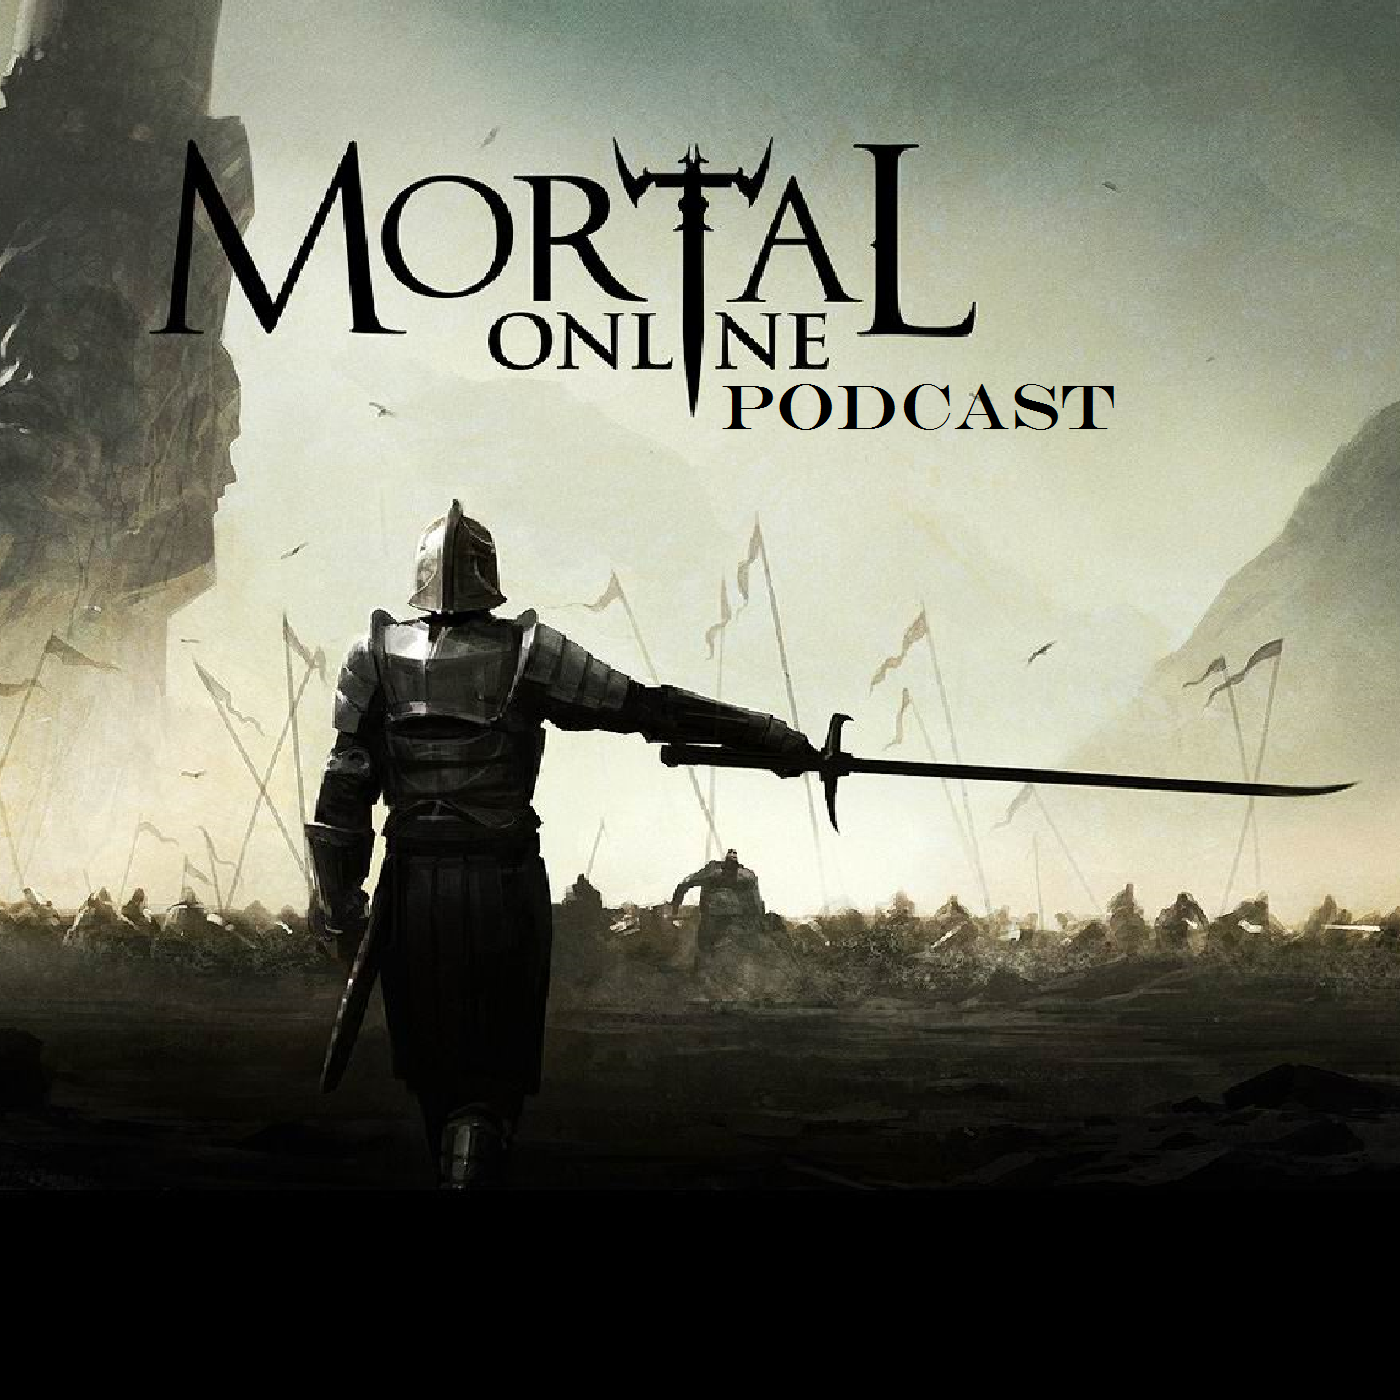 The Mortal Online Podcast – Quest Gaming Network